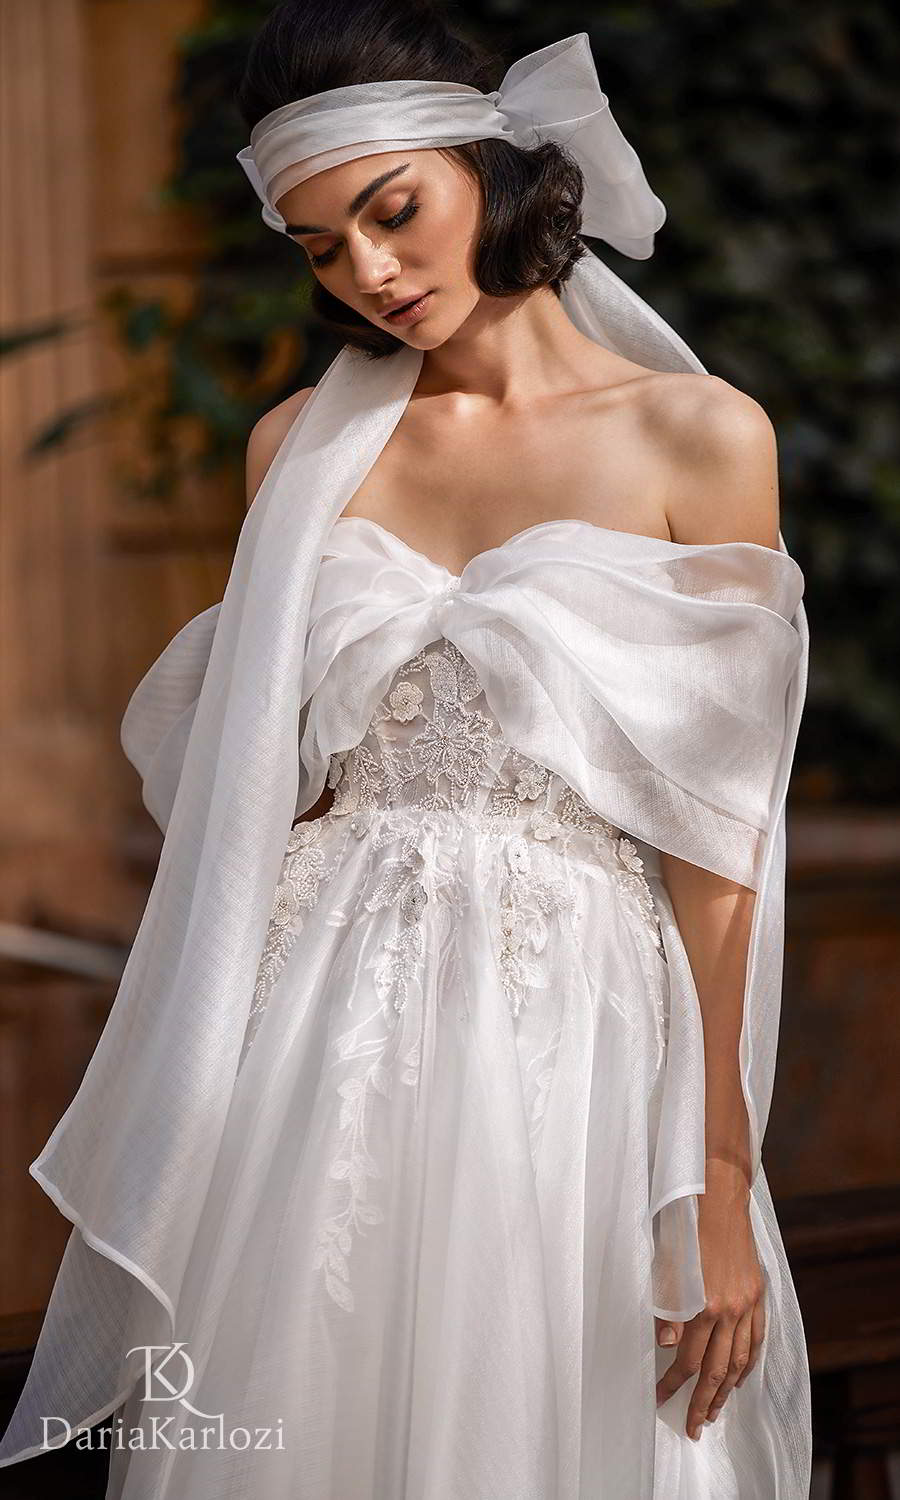 daria karlozi 2021 graceful dream bridal off shoulder drape sleeves sweetheart neckline embellished bodice a line ball gown wedding dress chapel train (gracious) zv